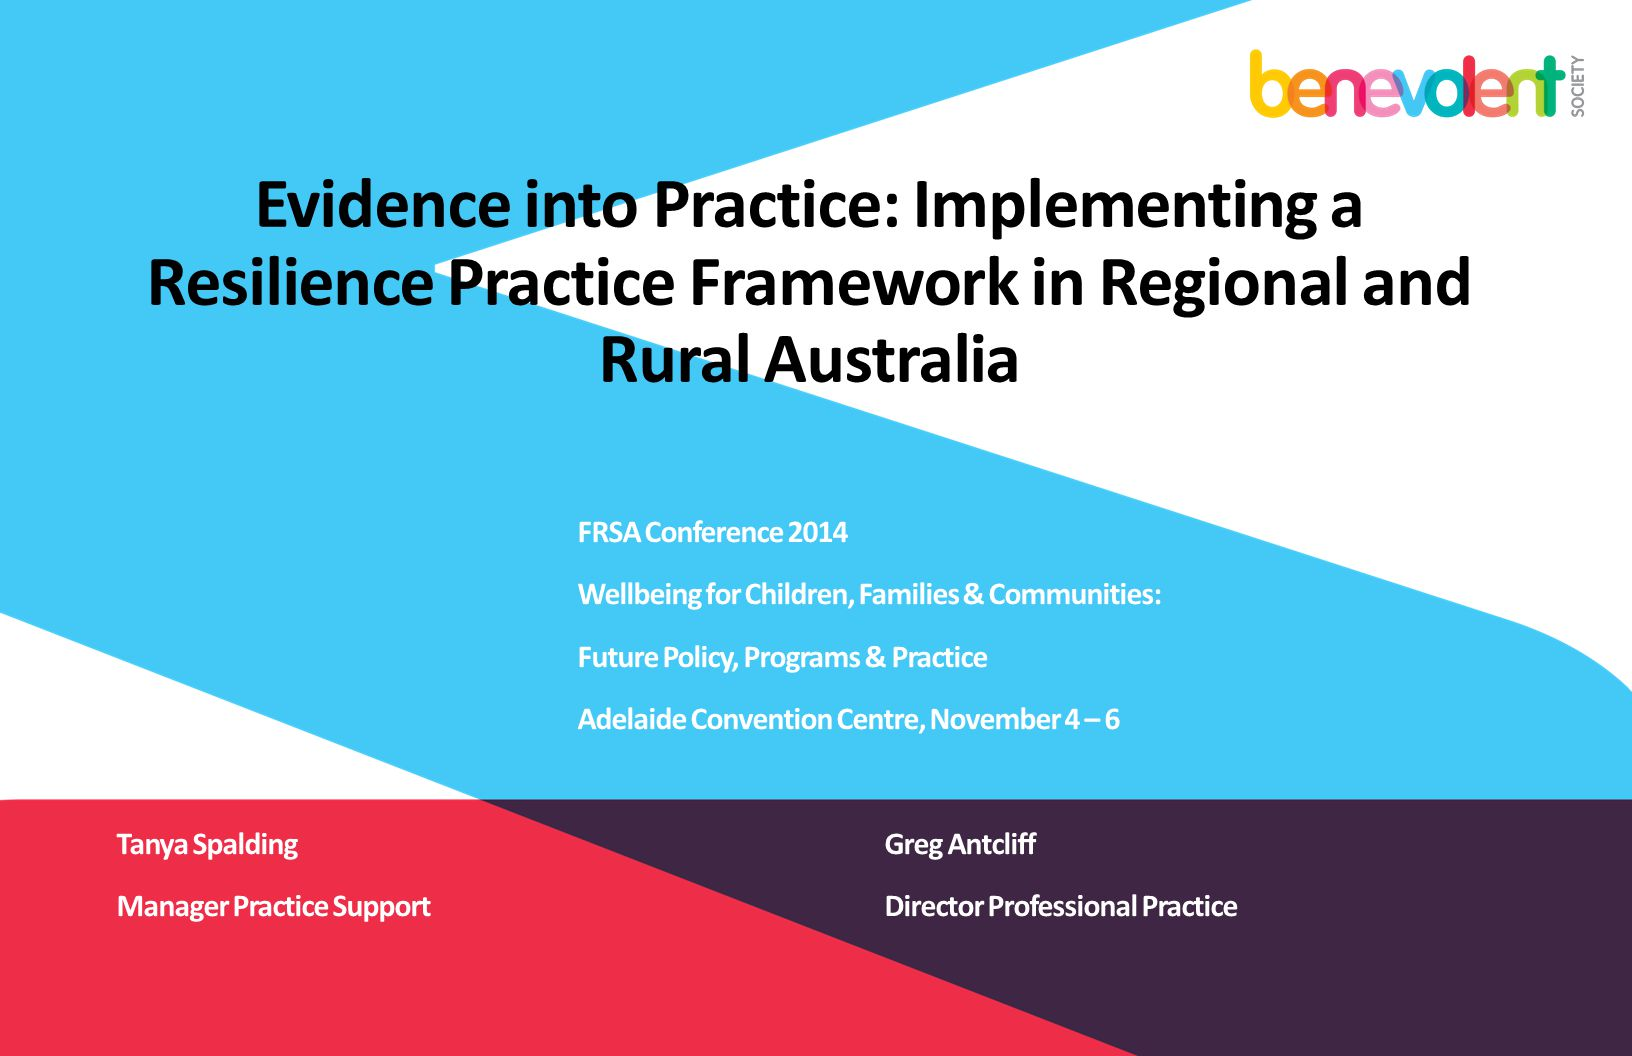 Evidence into Practice: Implementing a Resilience Practice Framework in Regional and Rural Australia